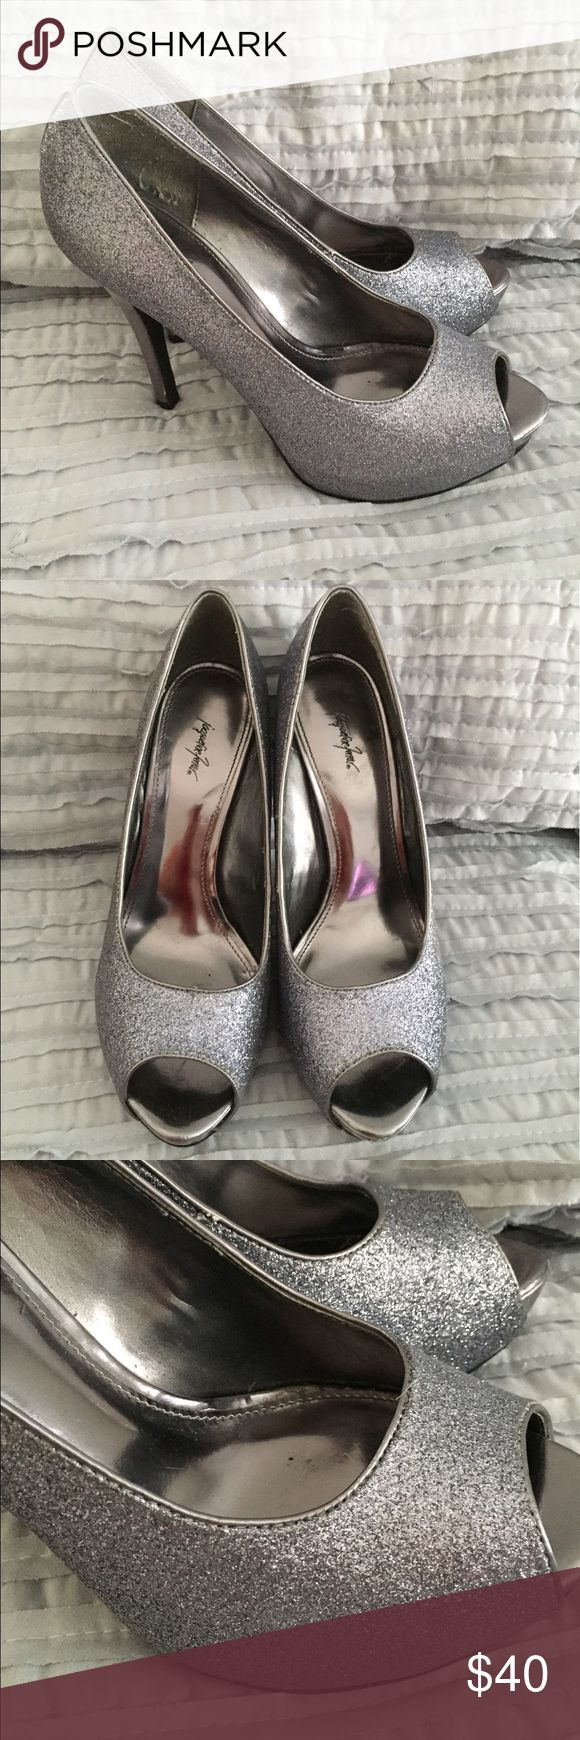 Glittery peep toe pumps Perfect for holidays or any dress up occasion. Glittery peep toe pumps in a silvery pewter color. Worn once Shoes Heels